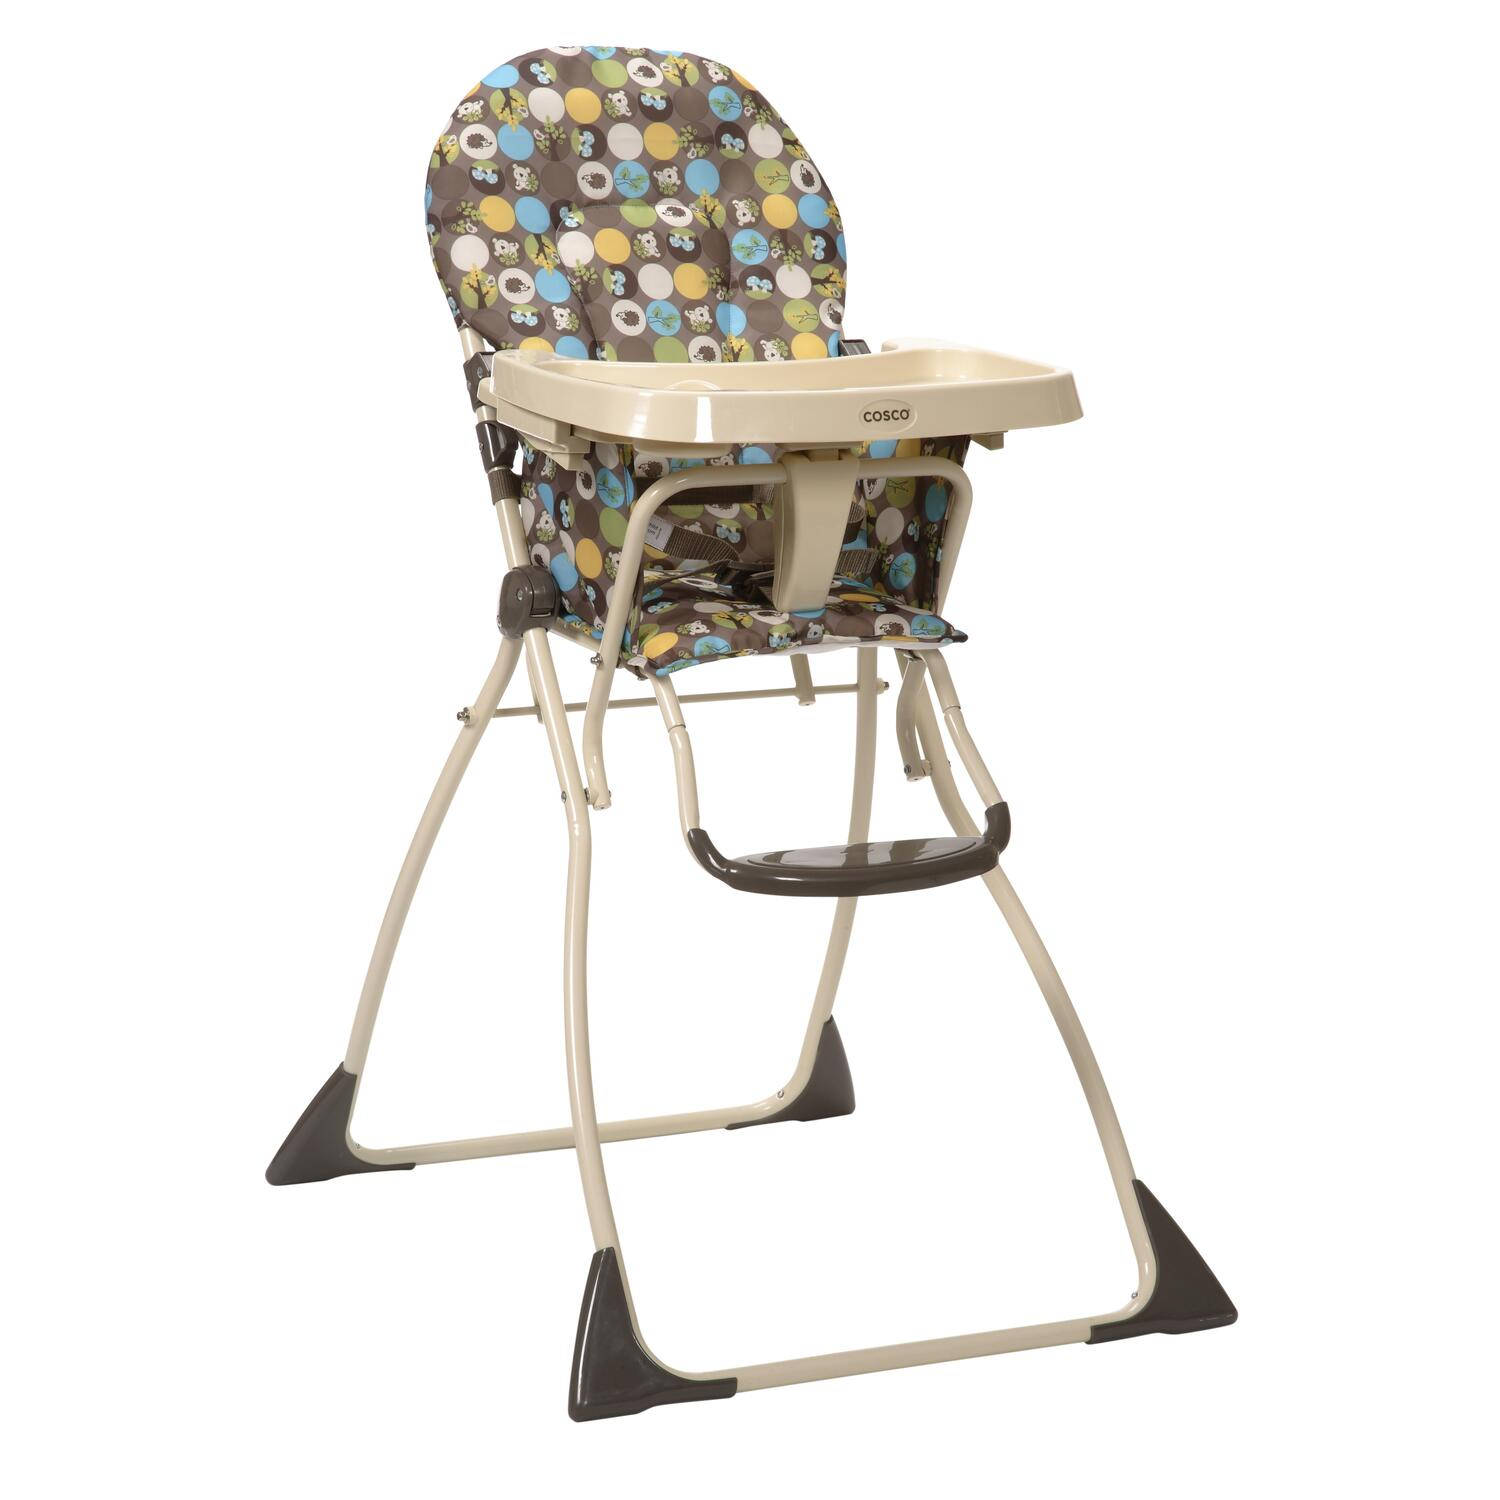 Cosco flat fold high chair into the woods also Tmm5 likewise Baby High Chairs furthermore Window Seat additionally Index. on high chair seat pad